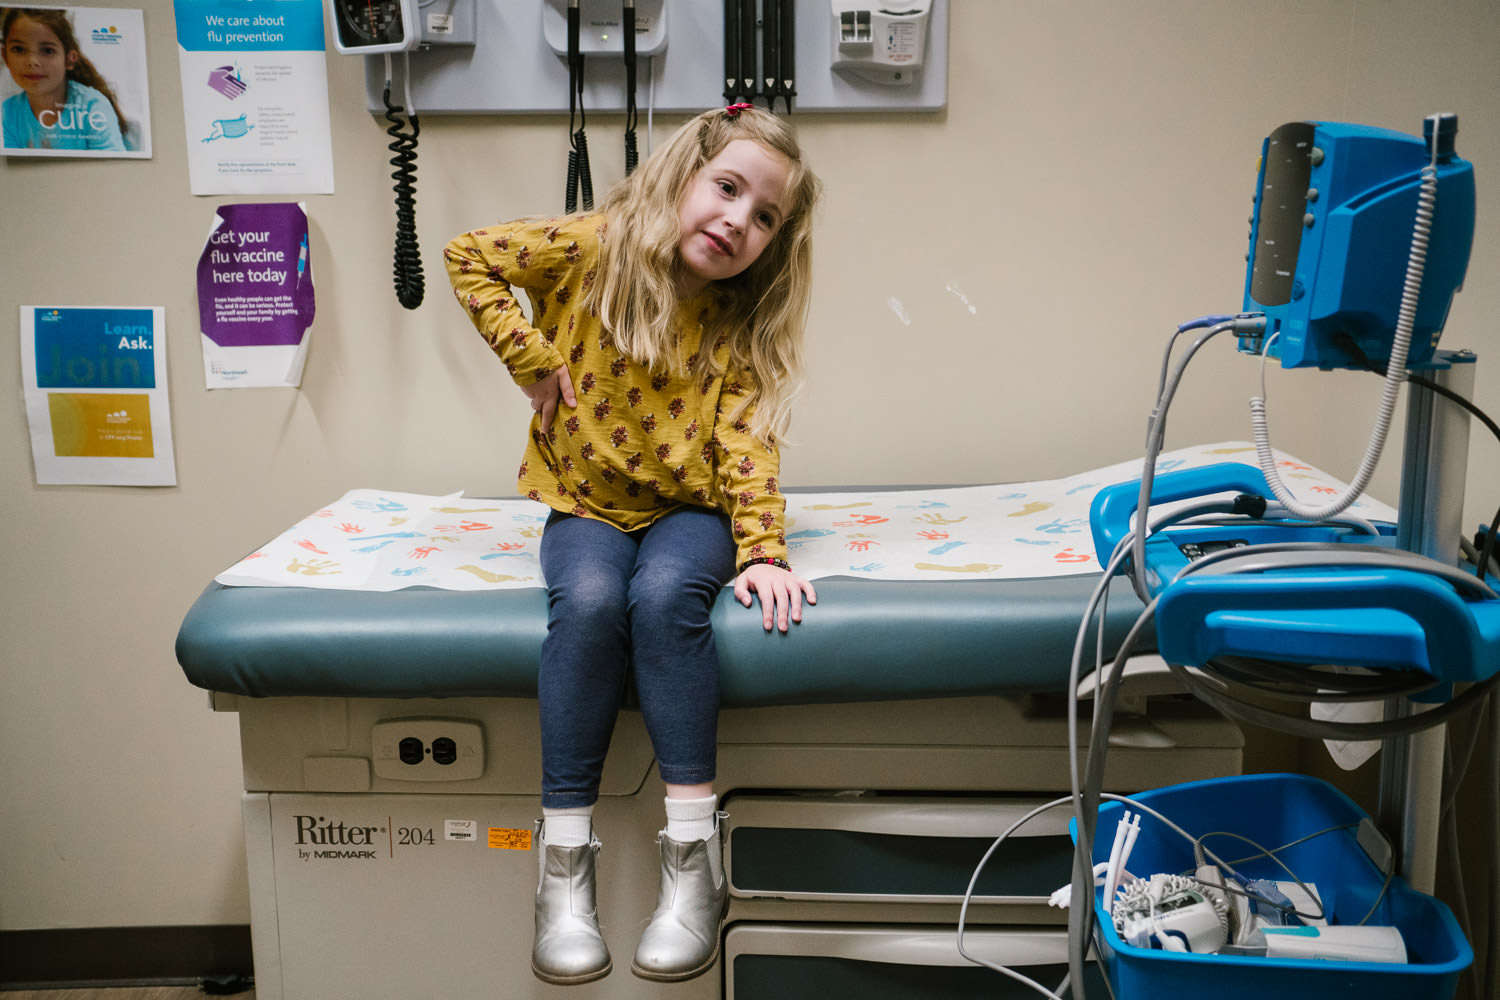 A little girl sits on an examining table in a doctor's office.